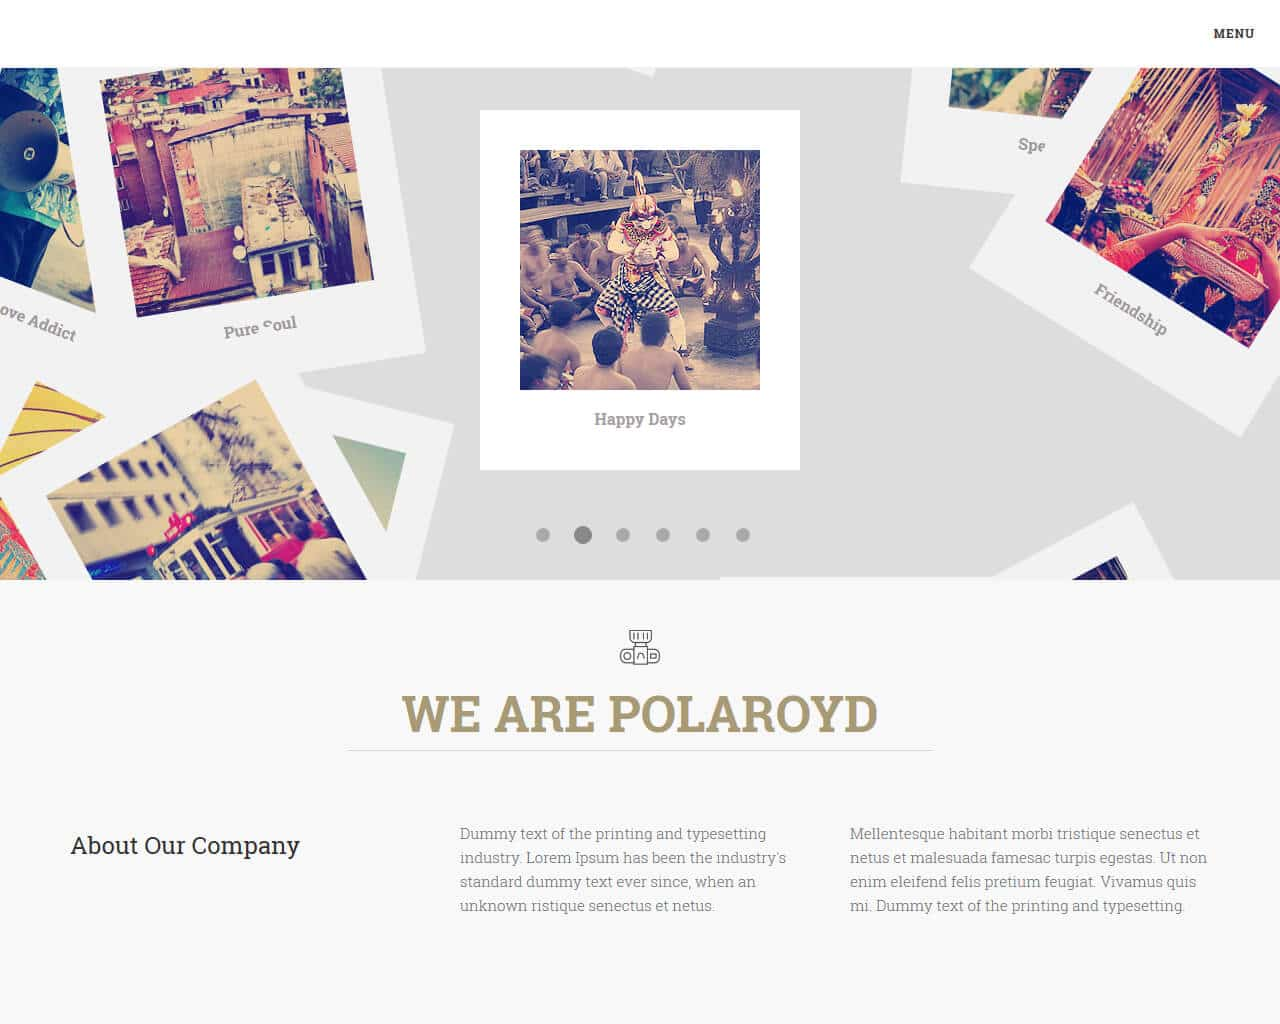 Polaroyd Website Template